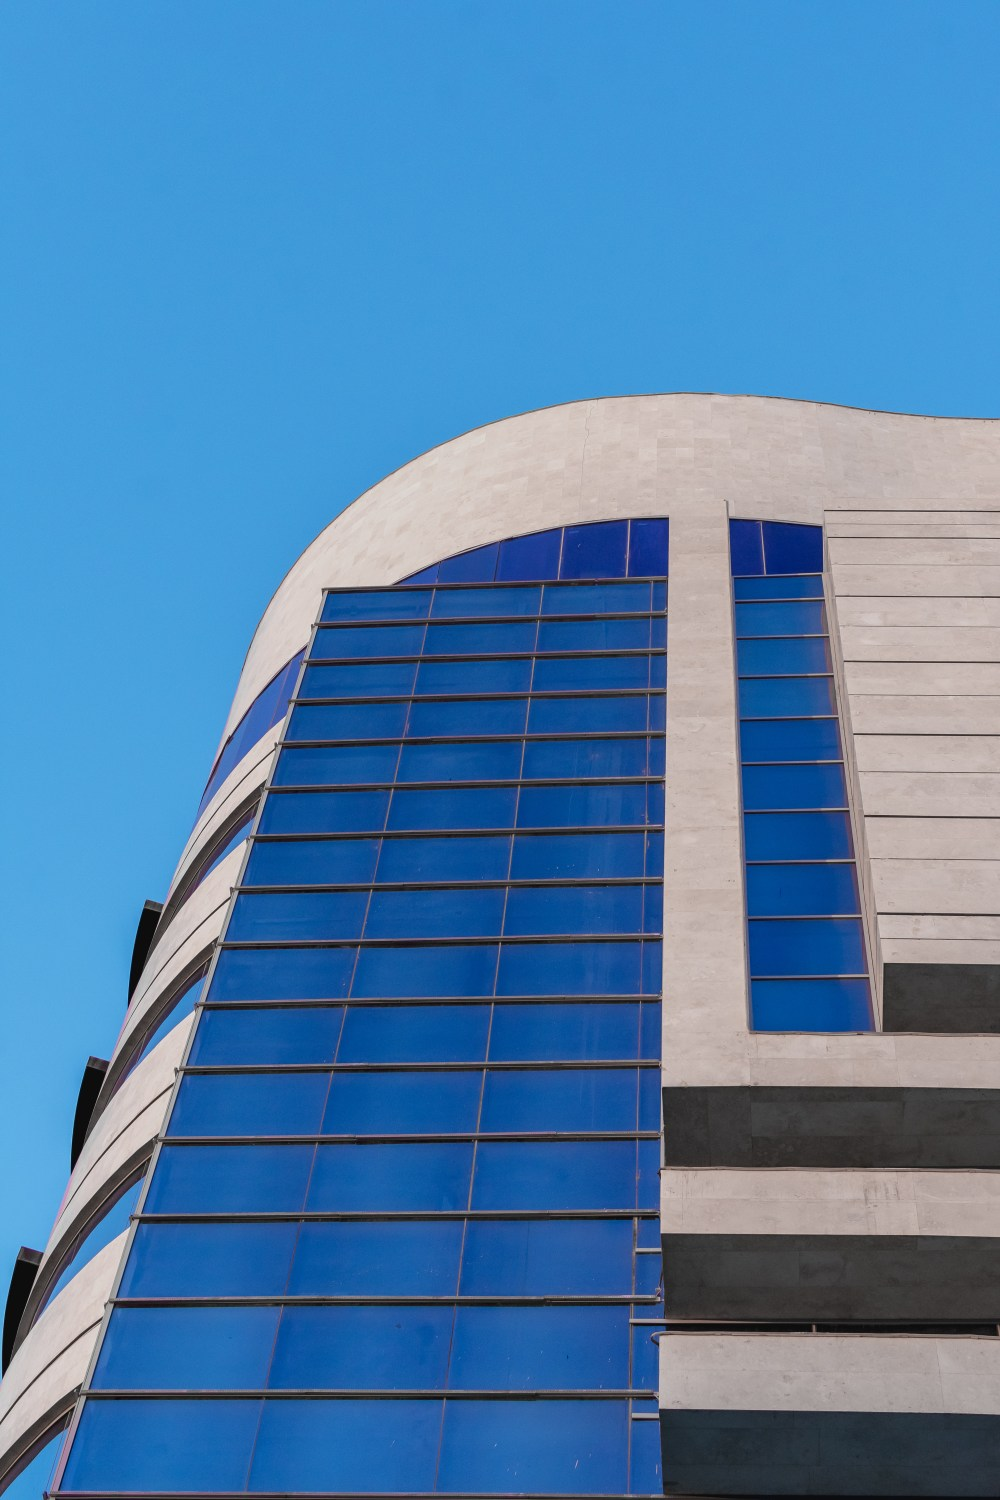 medium resolution of low angle photography of gray and blue concrete building